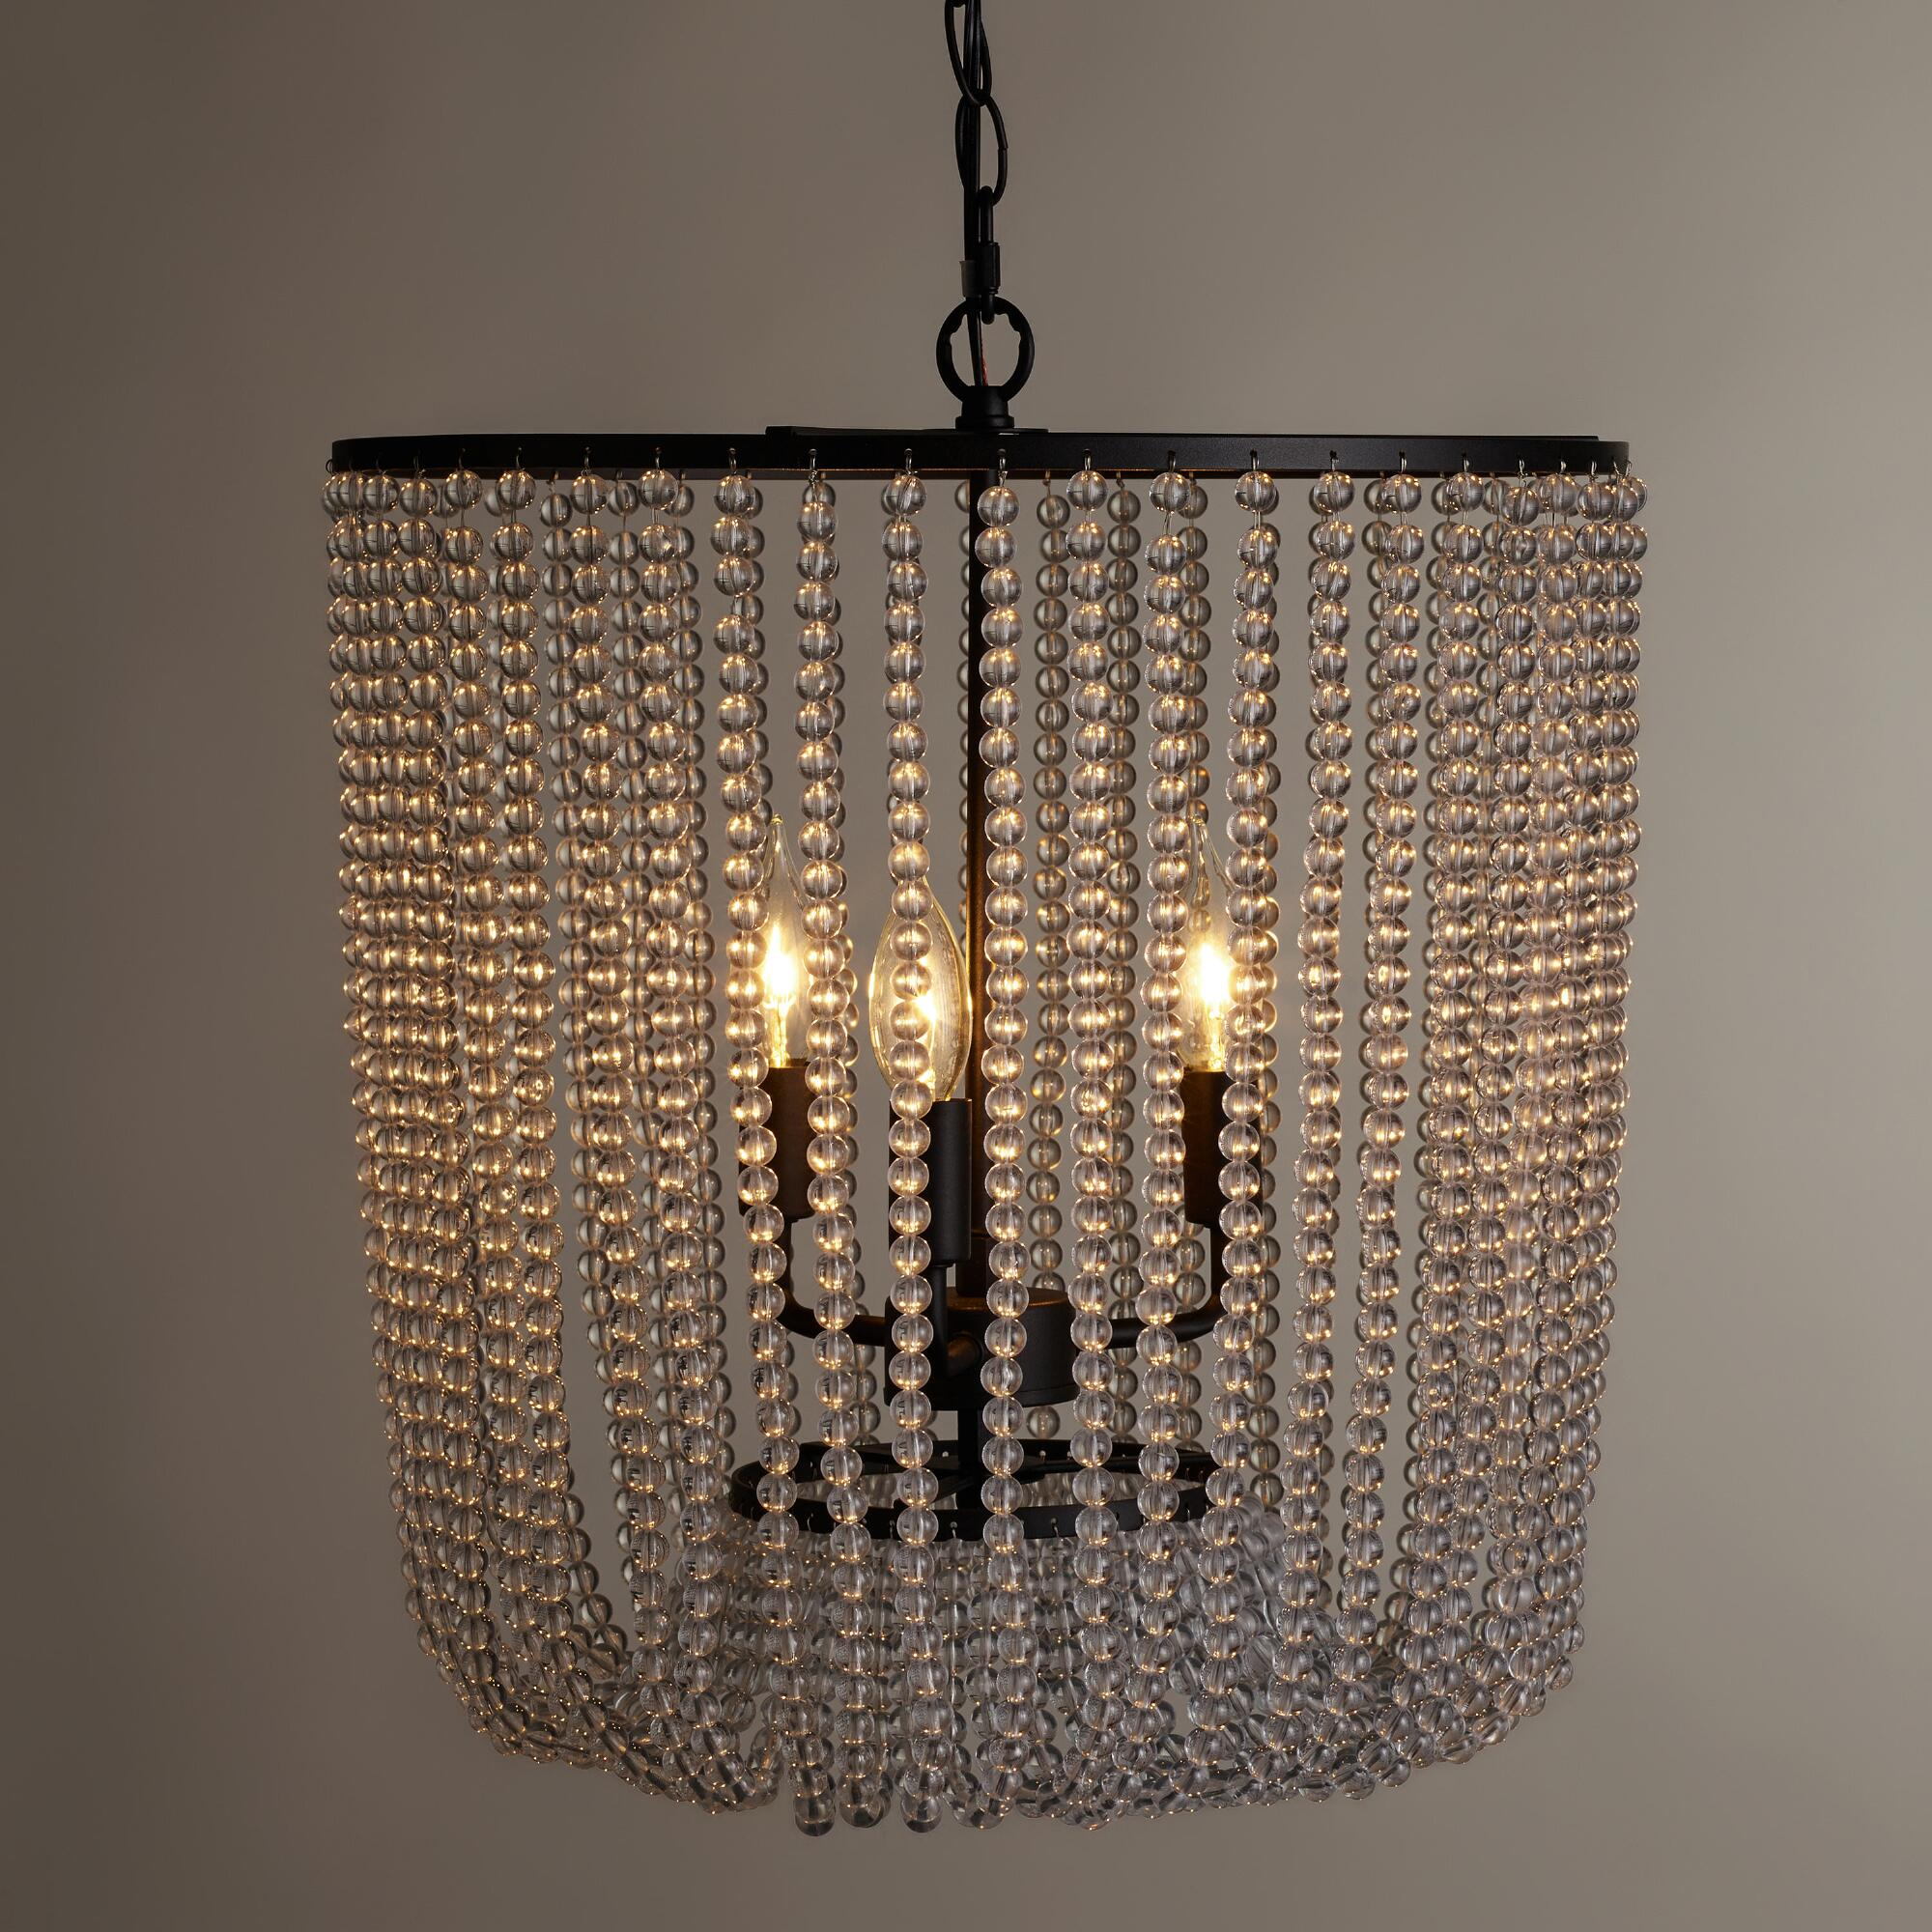 concept products beaded chandelier wood weathered anselme italian francesca